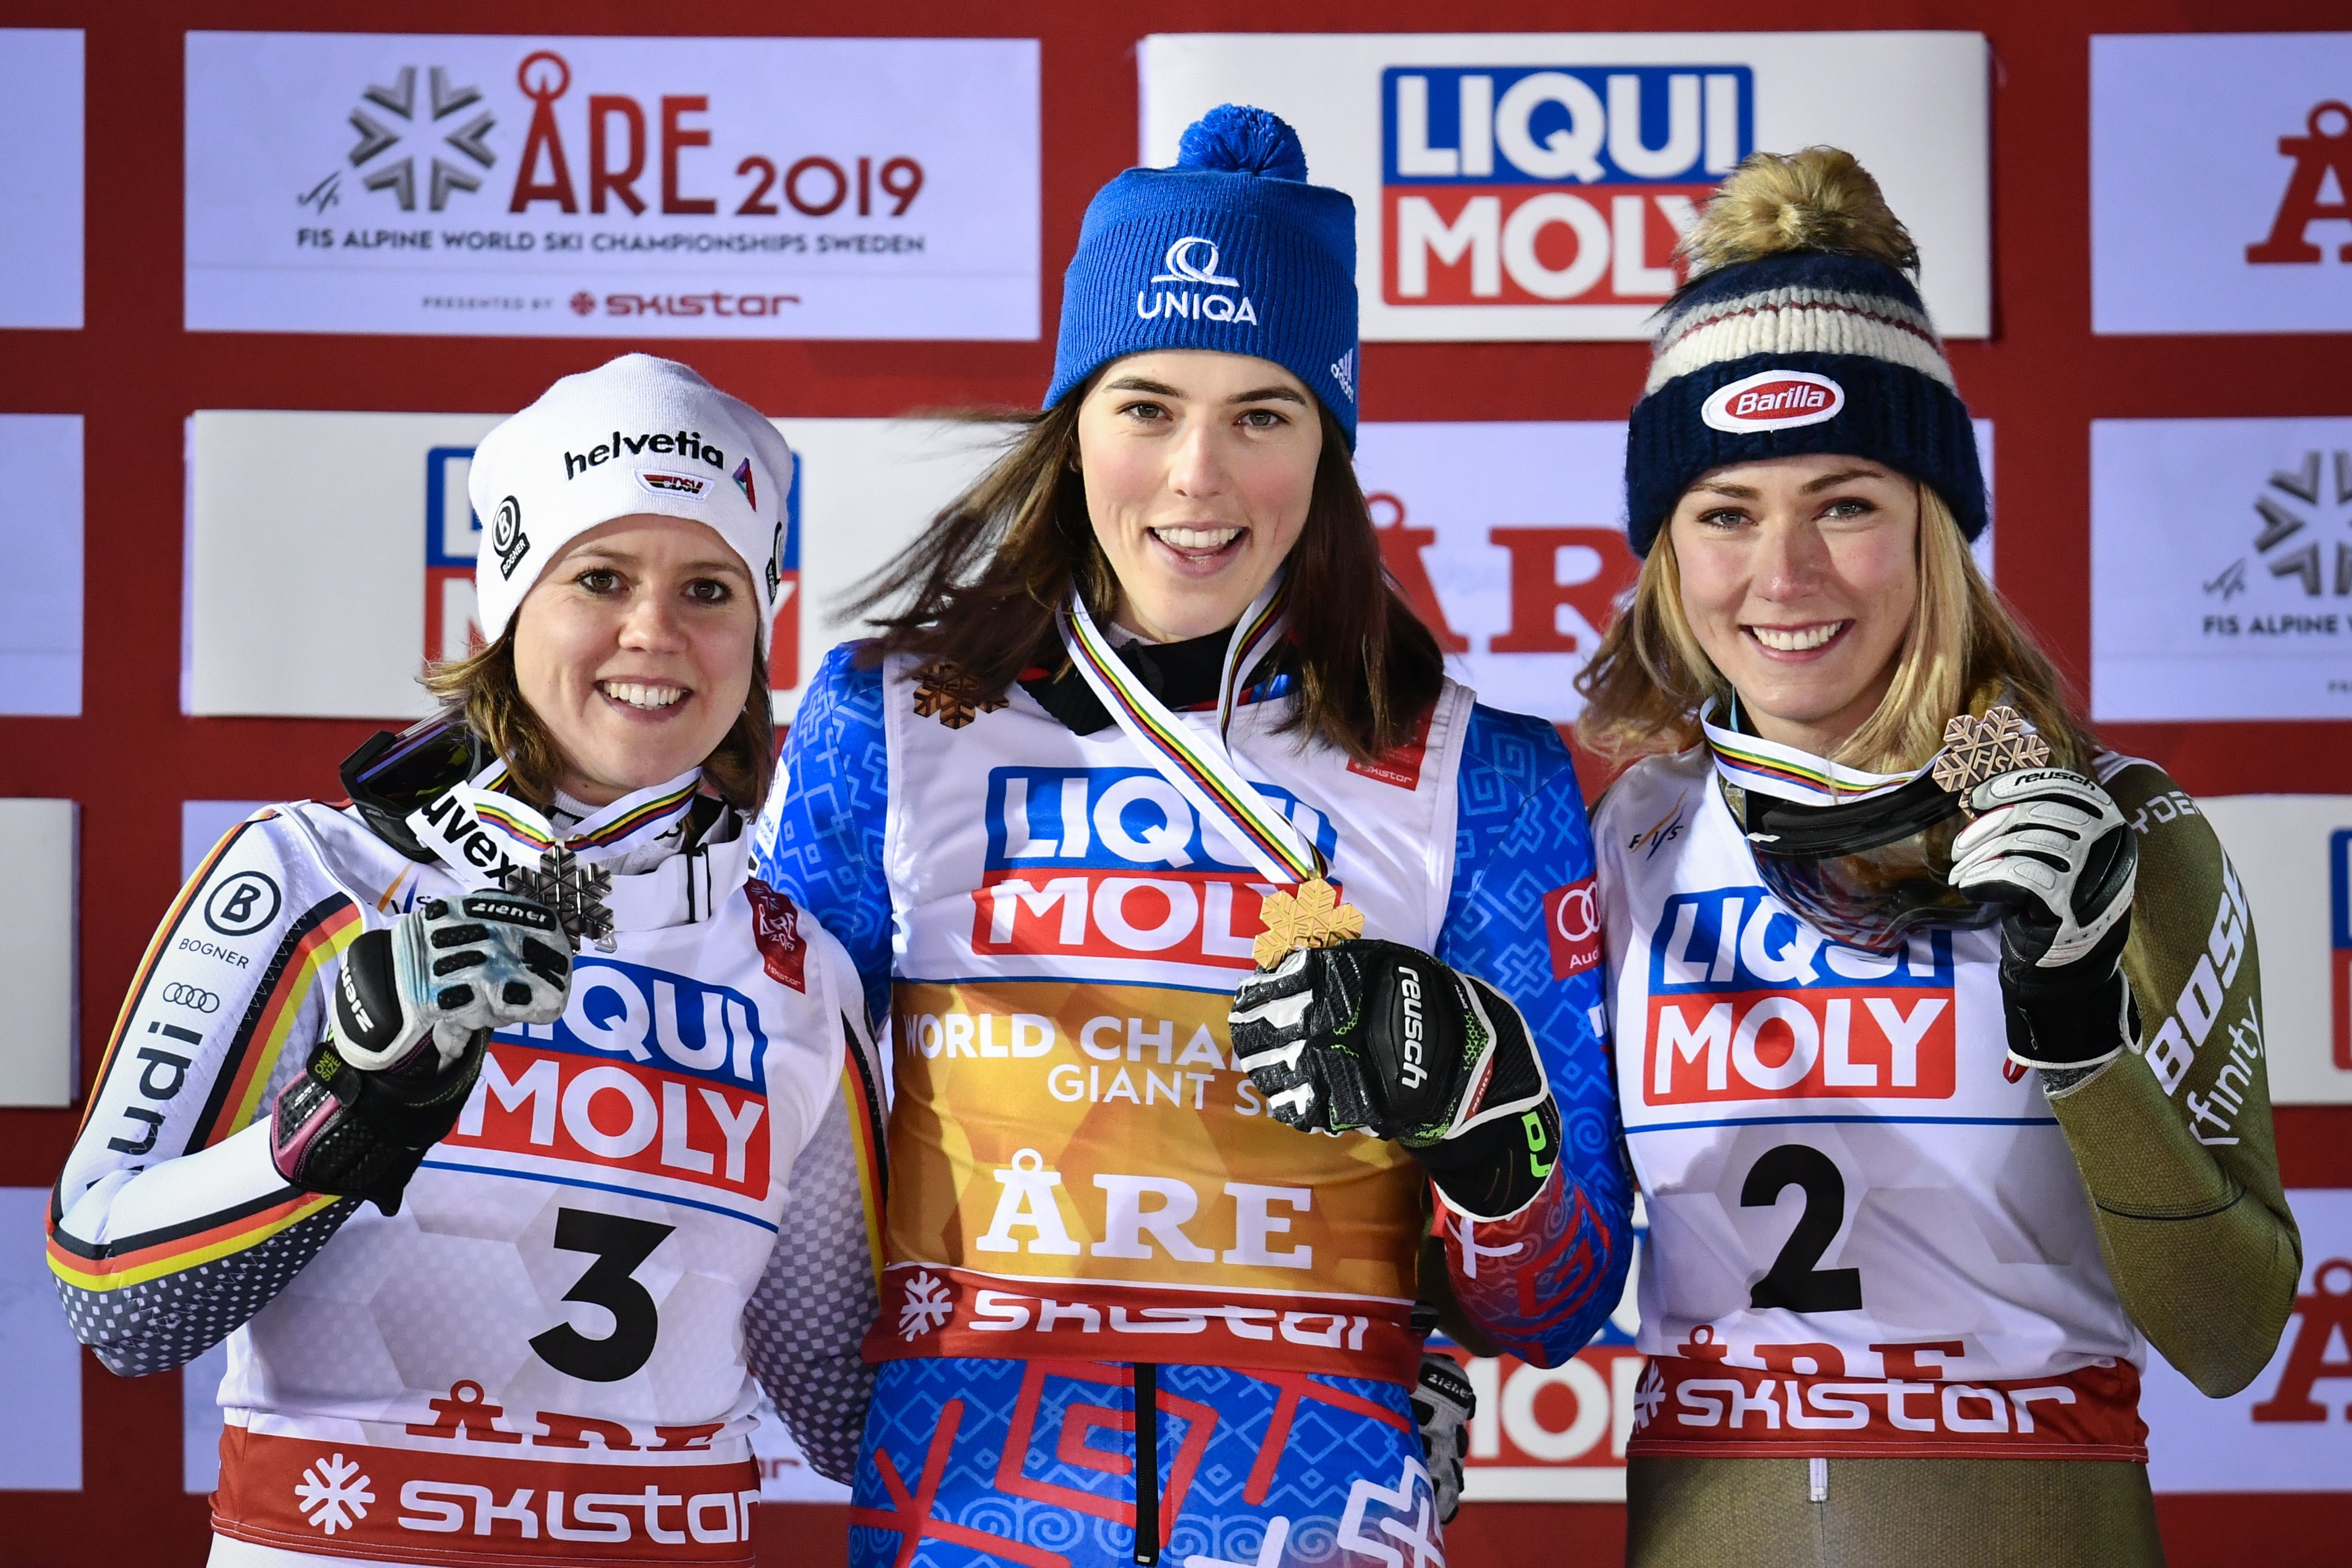 Second placed Germany's Viktoria Rebensburg, first placed Slovakia's Petra Vlhova and third placed US' Mikaela Shiffrin celebrate on the podium after the Women's Giant slalom event at the 2019 FIS Alpine Ski World Championships at the National Arena in Ar